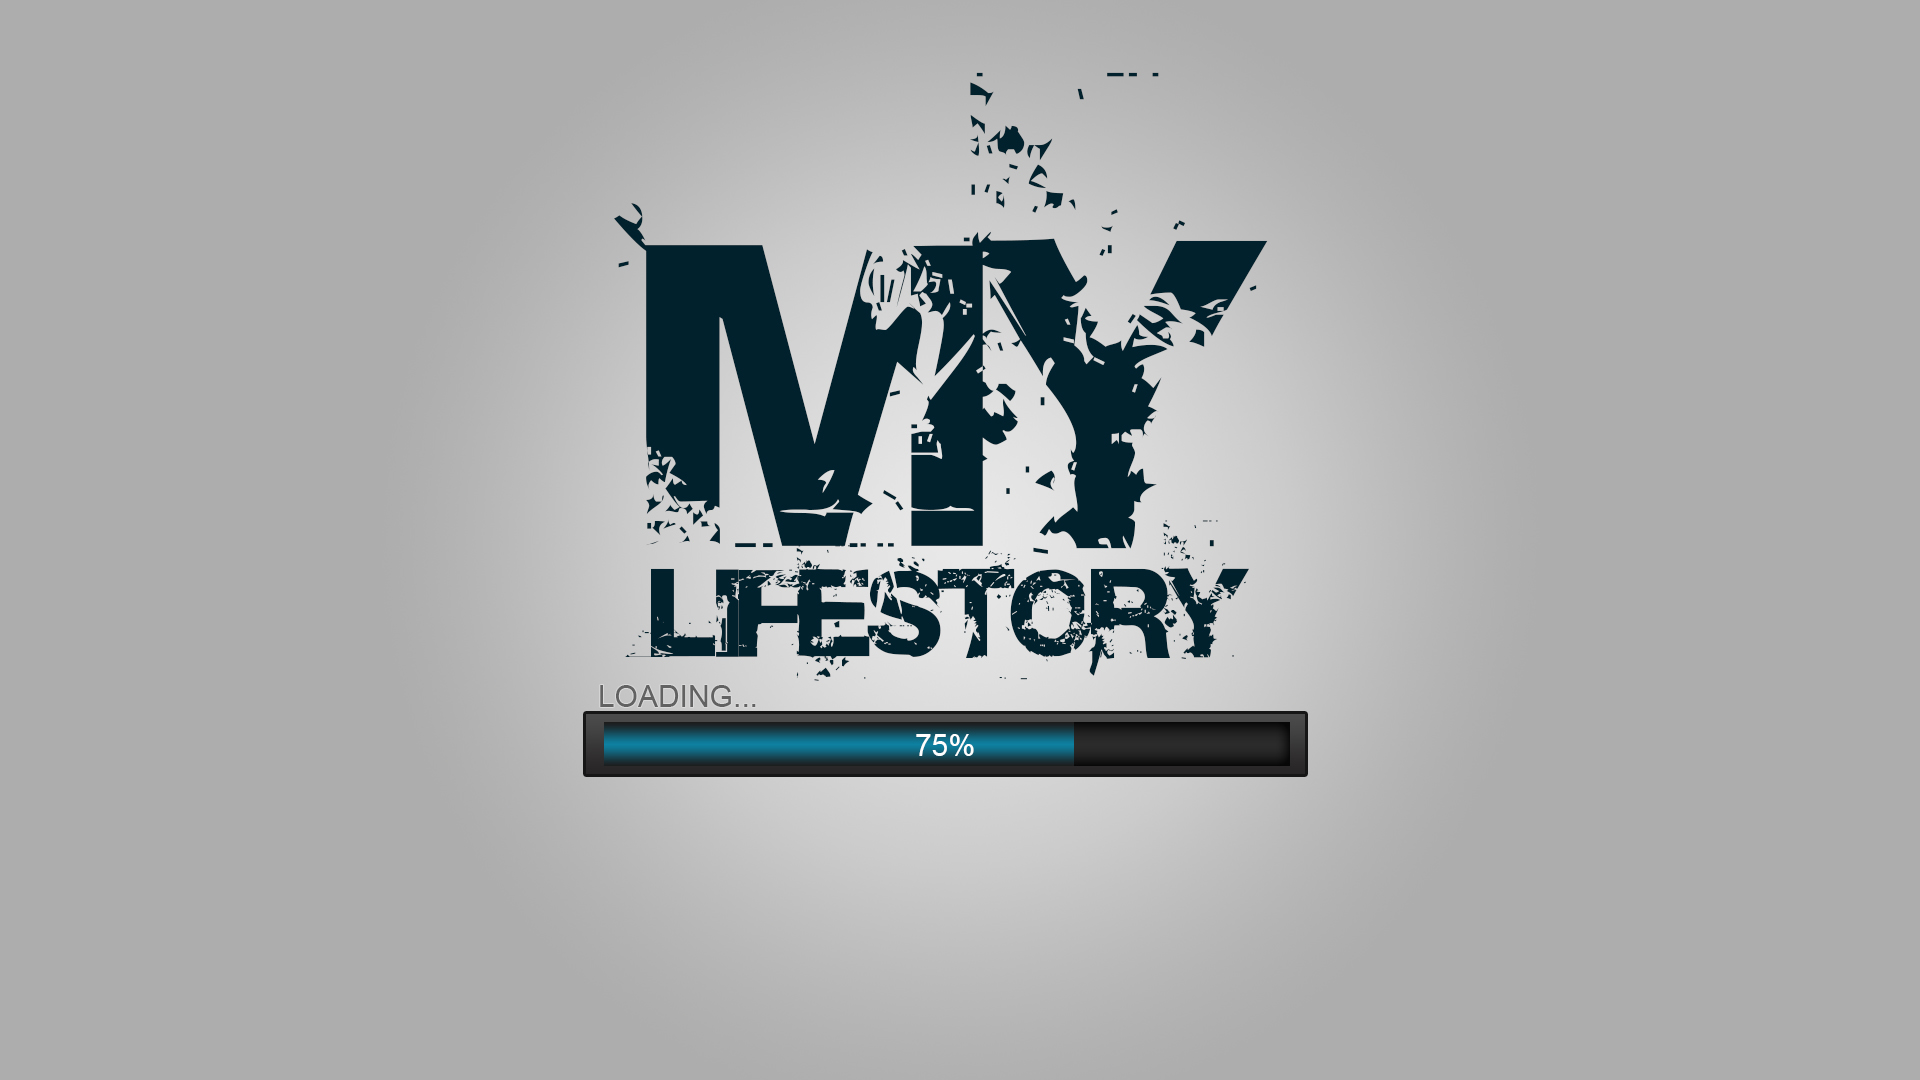 My Life Story Is Loading HD Wallpaper